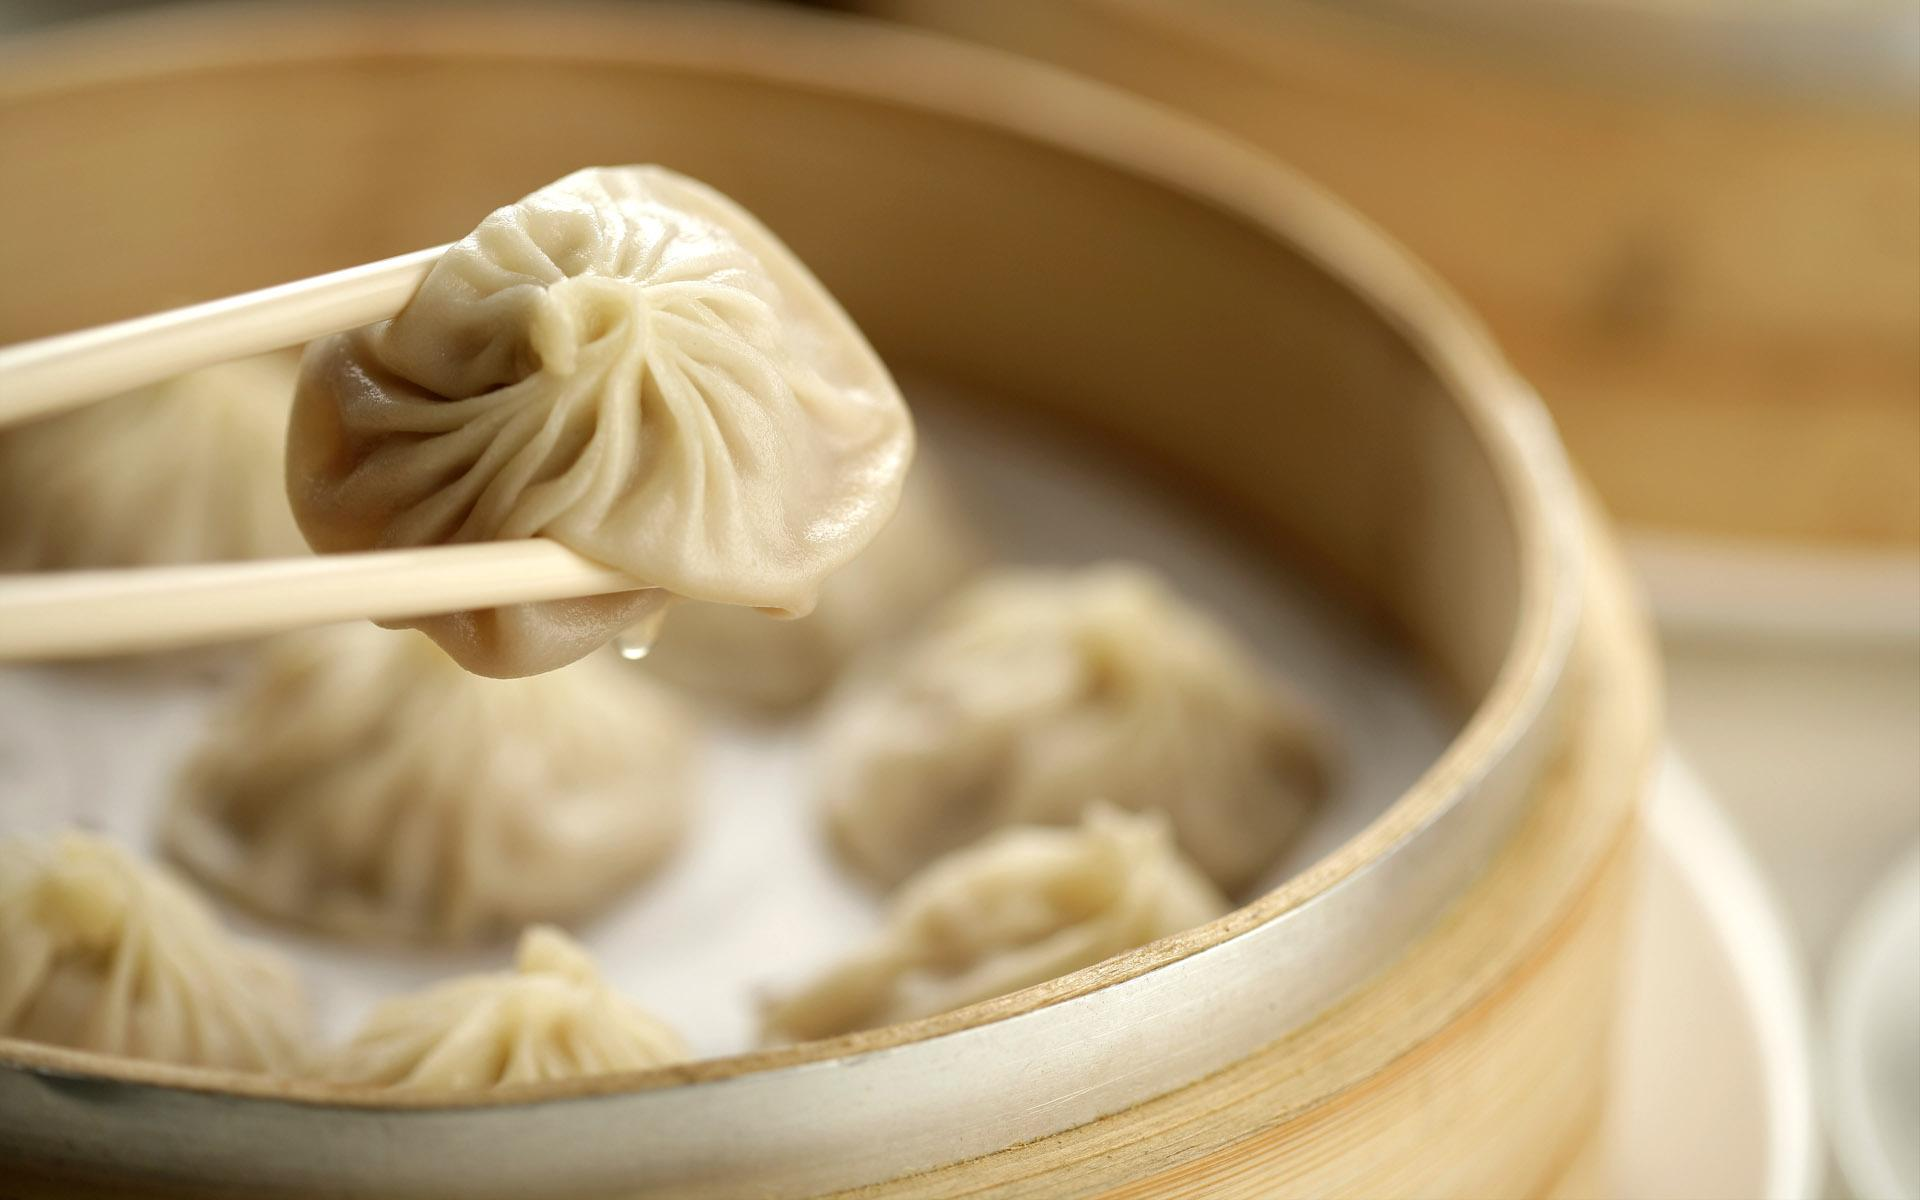 chinese food background - photo #35